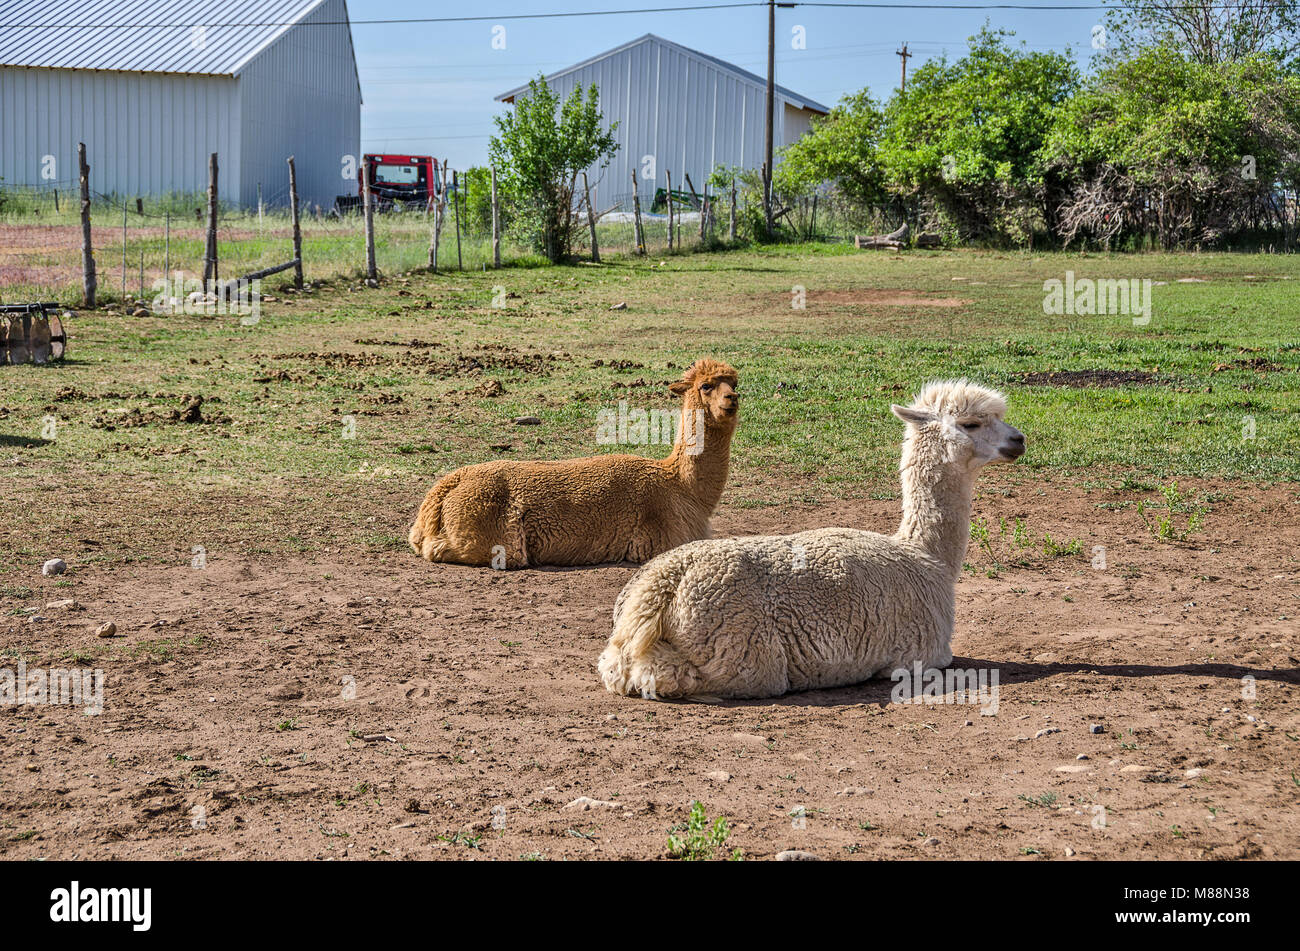 Llamas (lama glama) resting in the sun.  The brown one is alert to its surroundings while the white one seems to Stock Photo